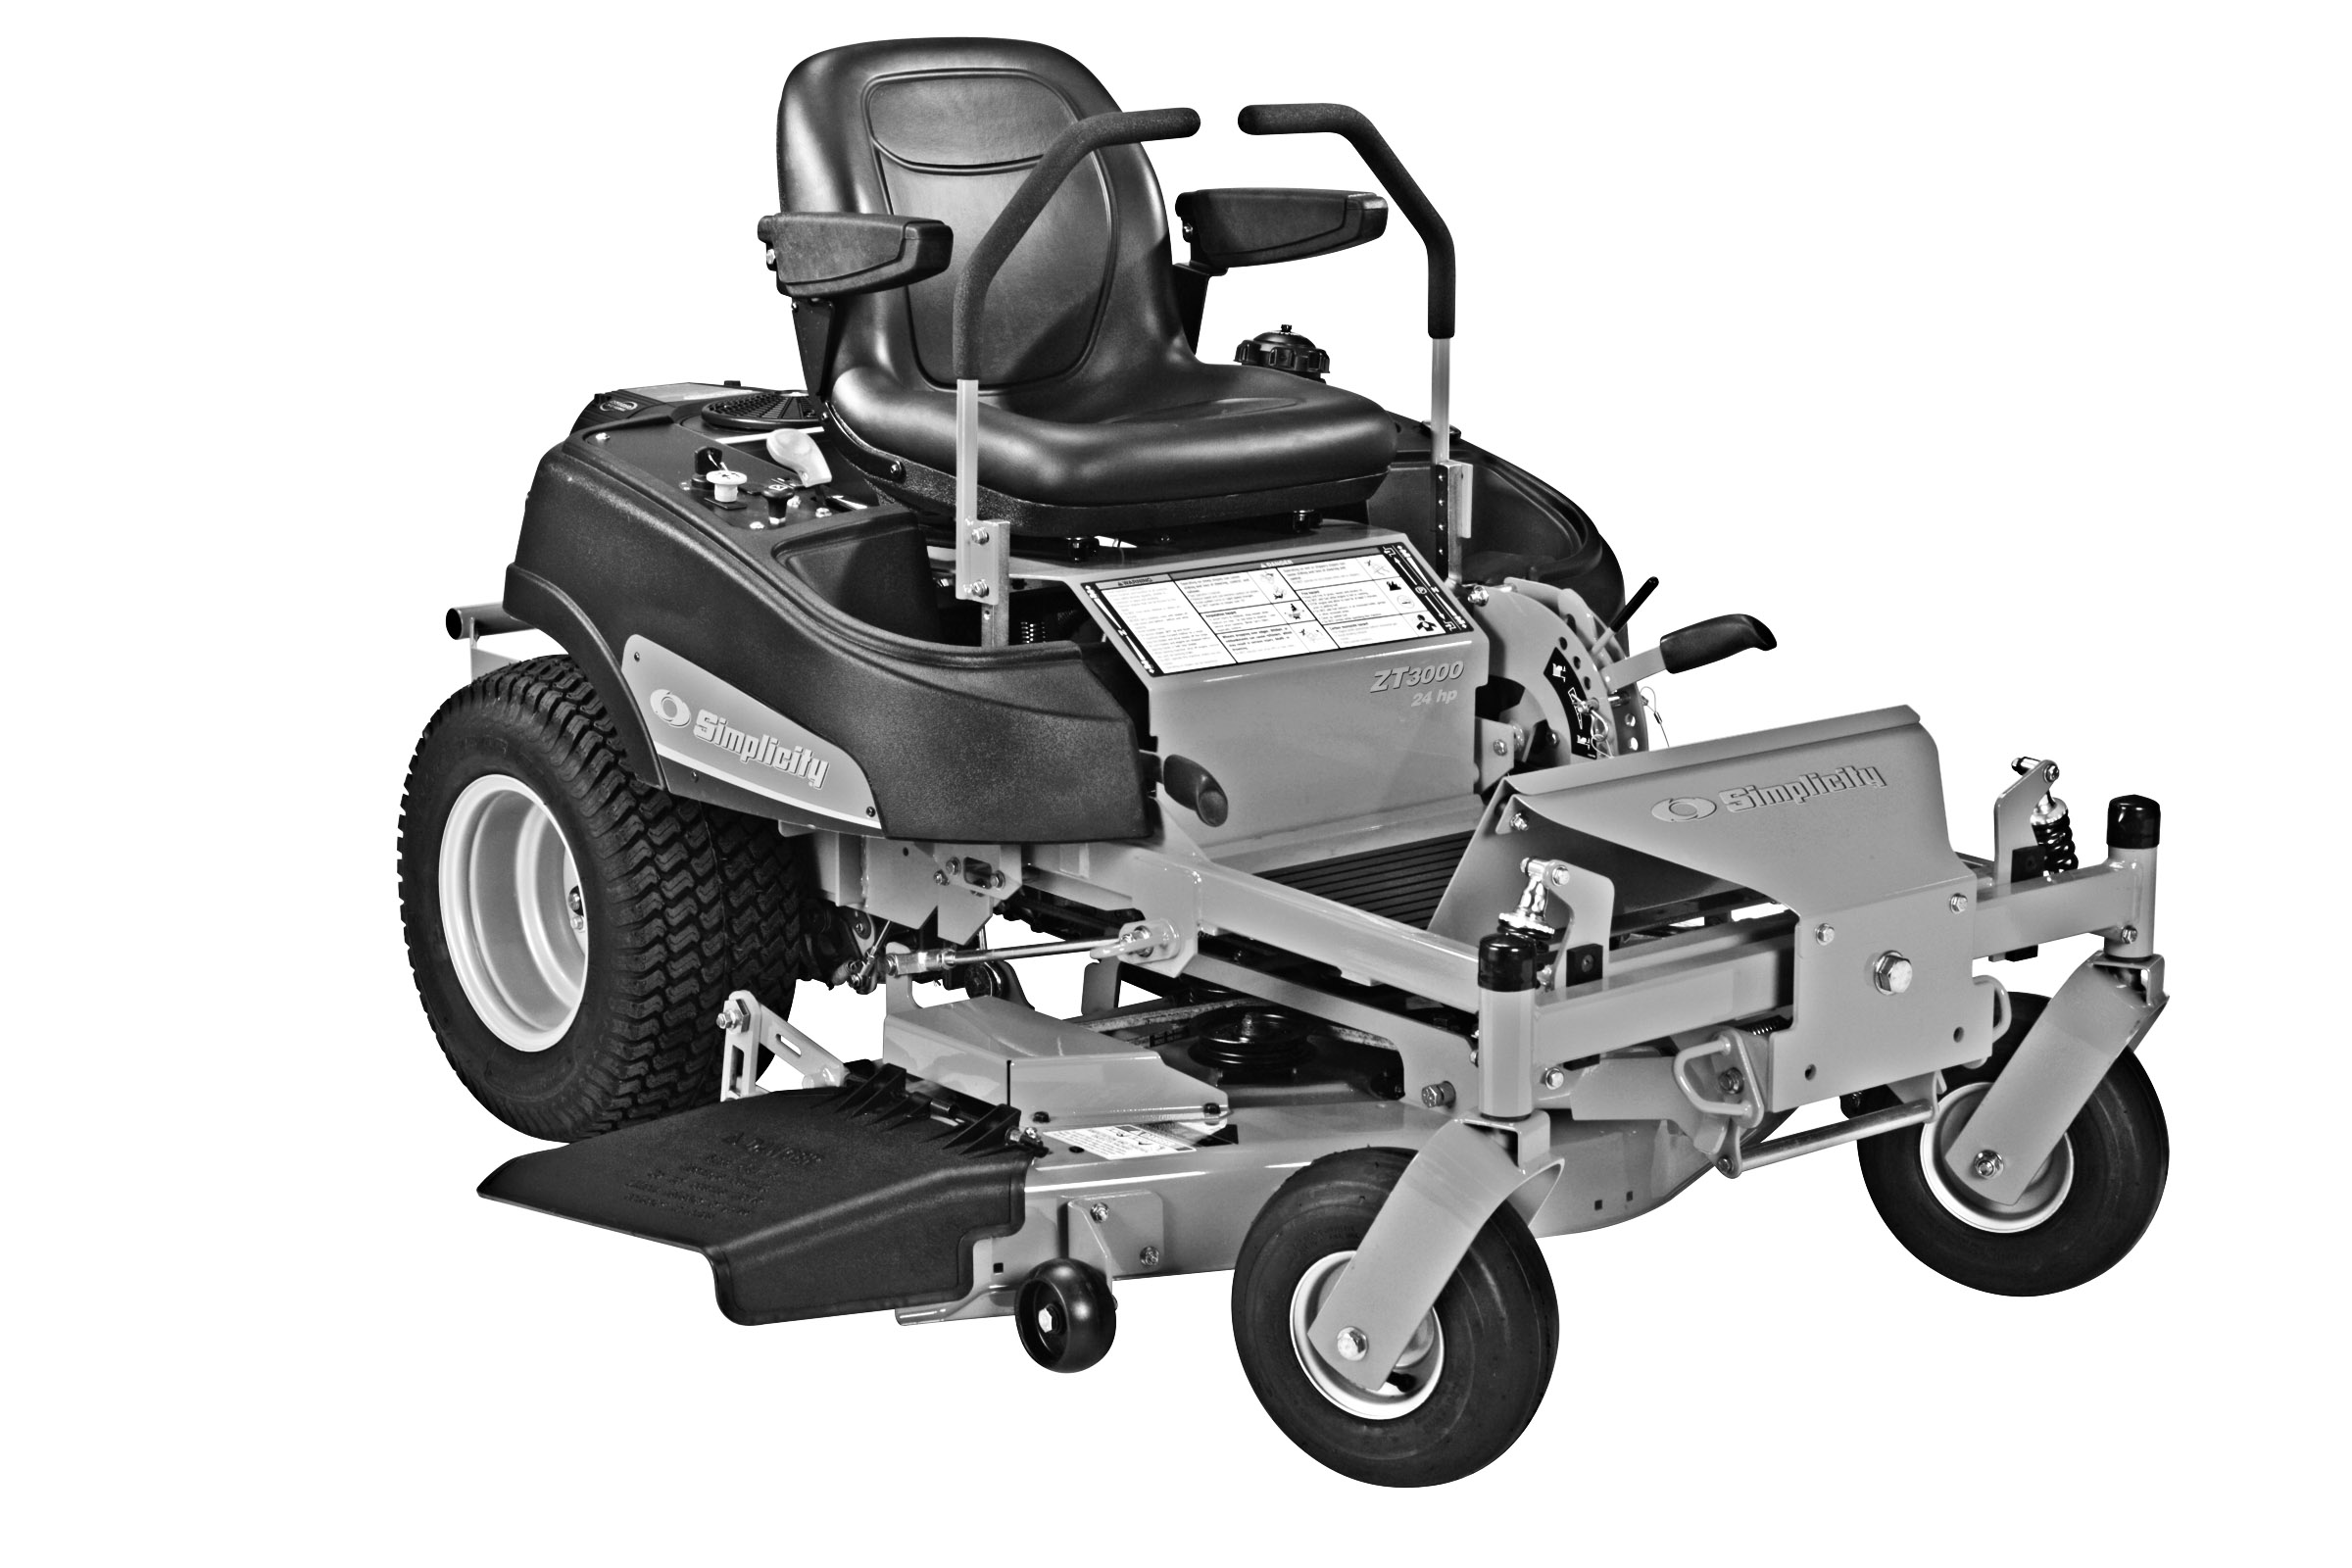 Zero Turn Mower Clipart - Clipart Suggest